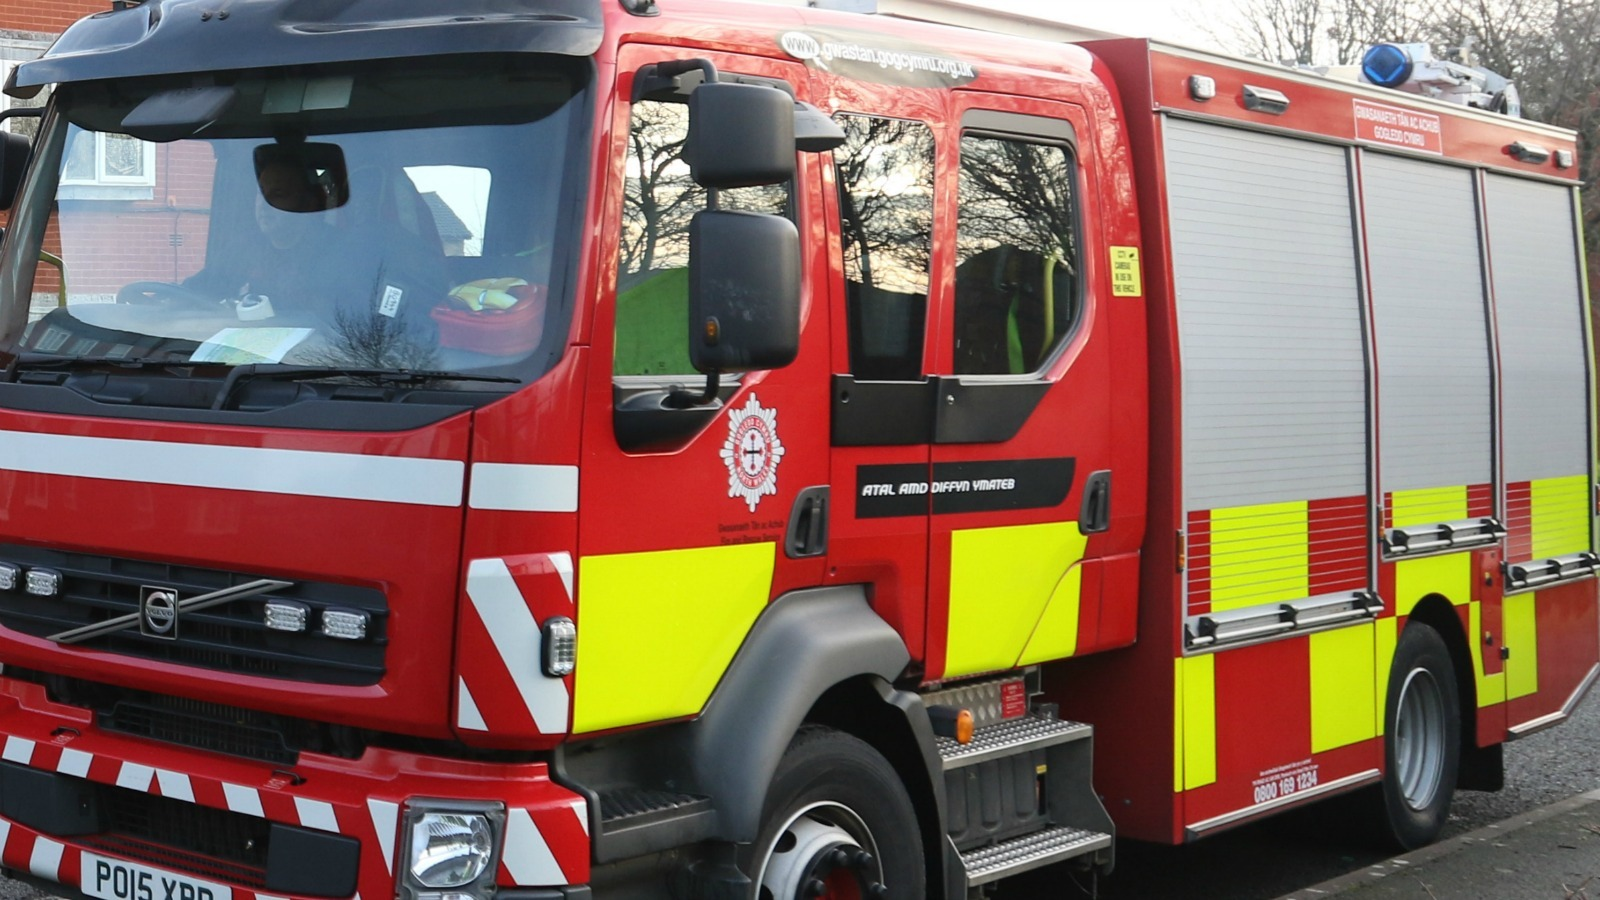 Library image of North Wales Fire engine